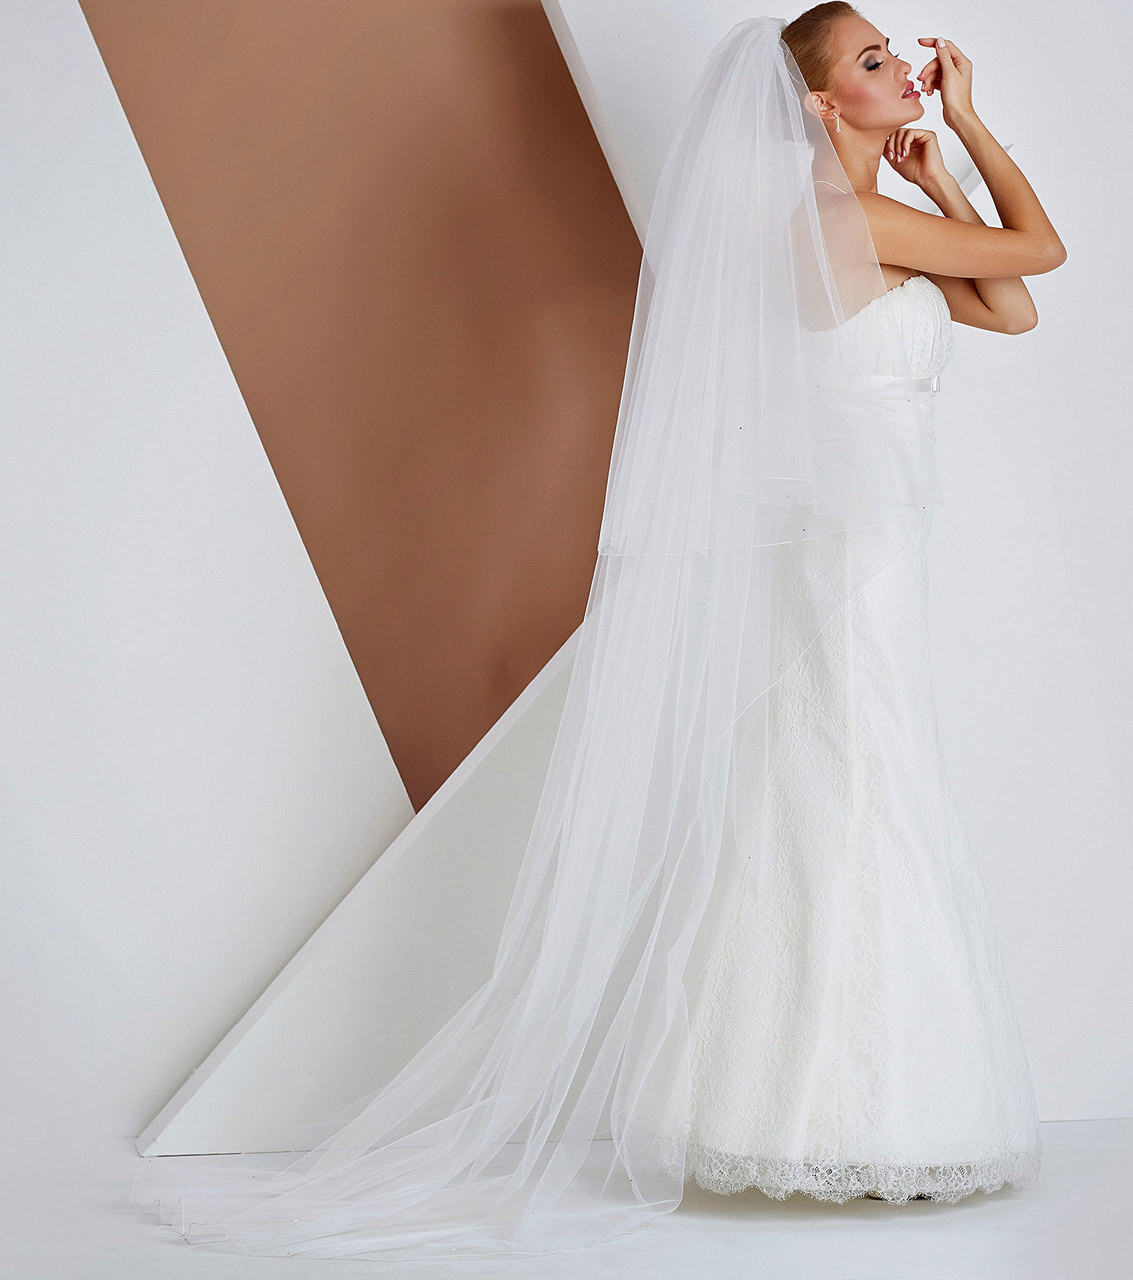 Valentia boutique accessories we have a beautiful collection of bridal veils please see a small collection online more designs available in store junglespirit Gallery